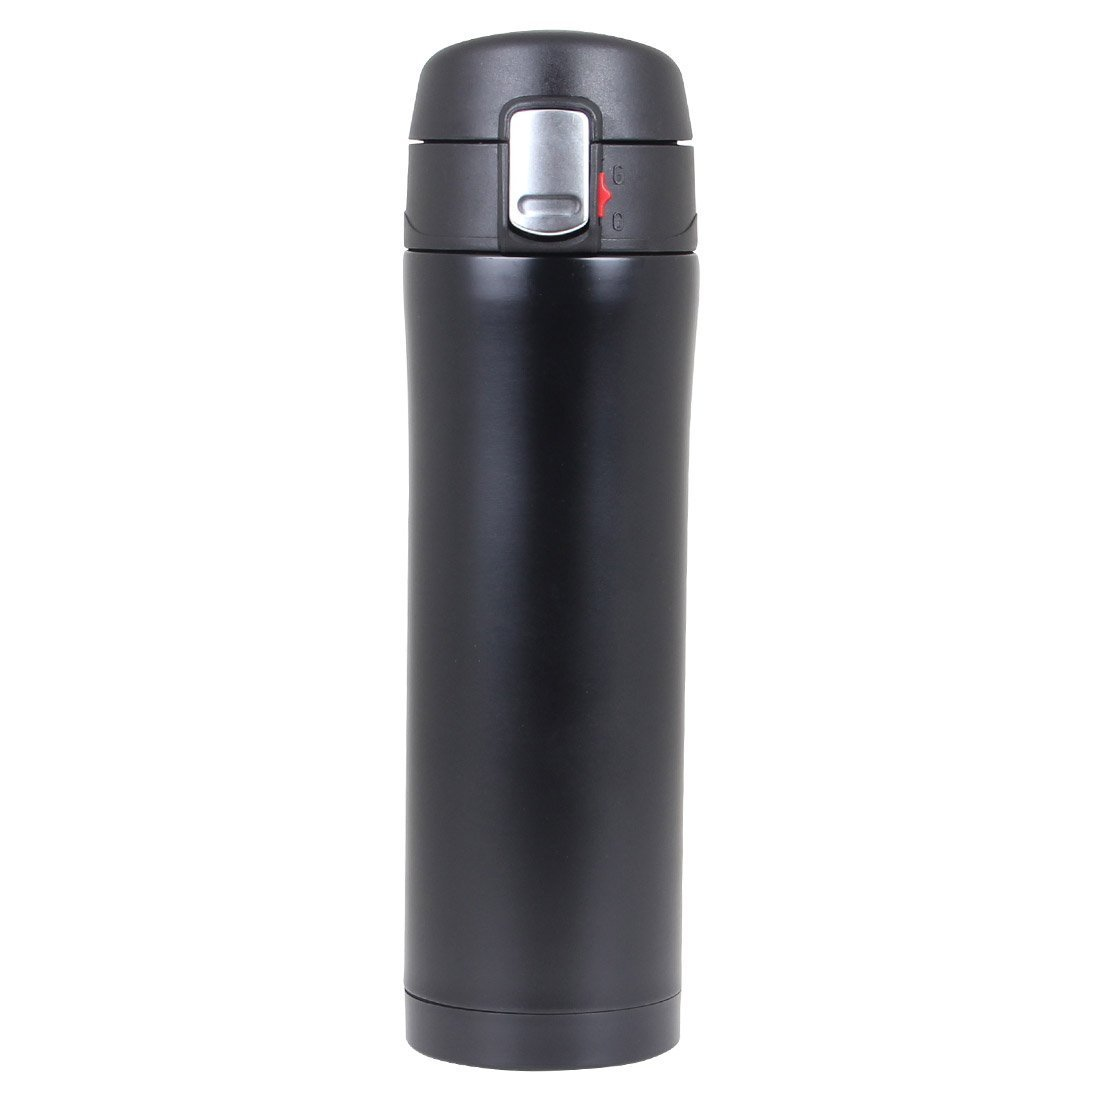 Water Bottles Stainless Steel Double Wall Vacuum Insulated Flask Leak Proof Sports Running Travel Mugs Beverages Hot Cold Retention (Black)